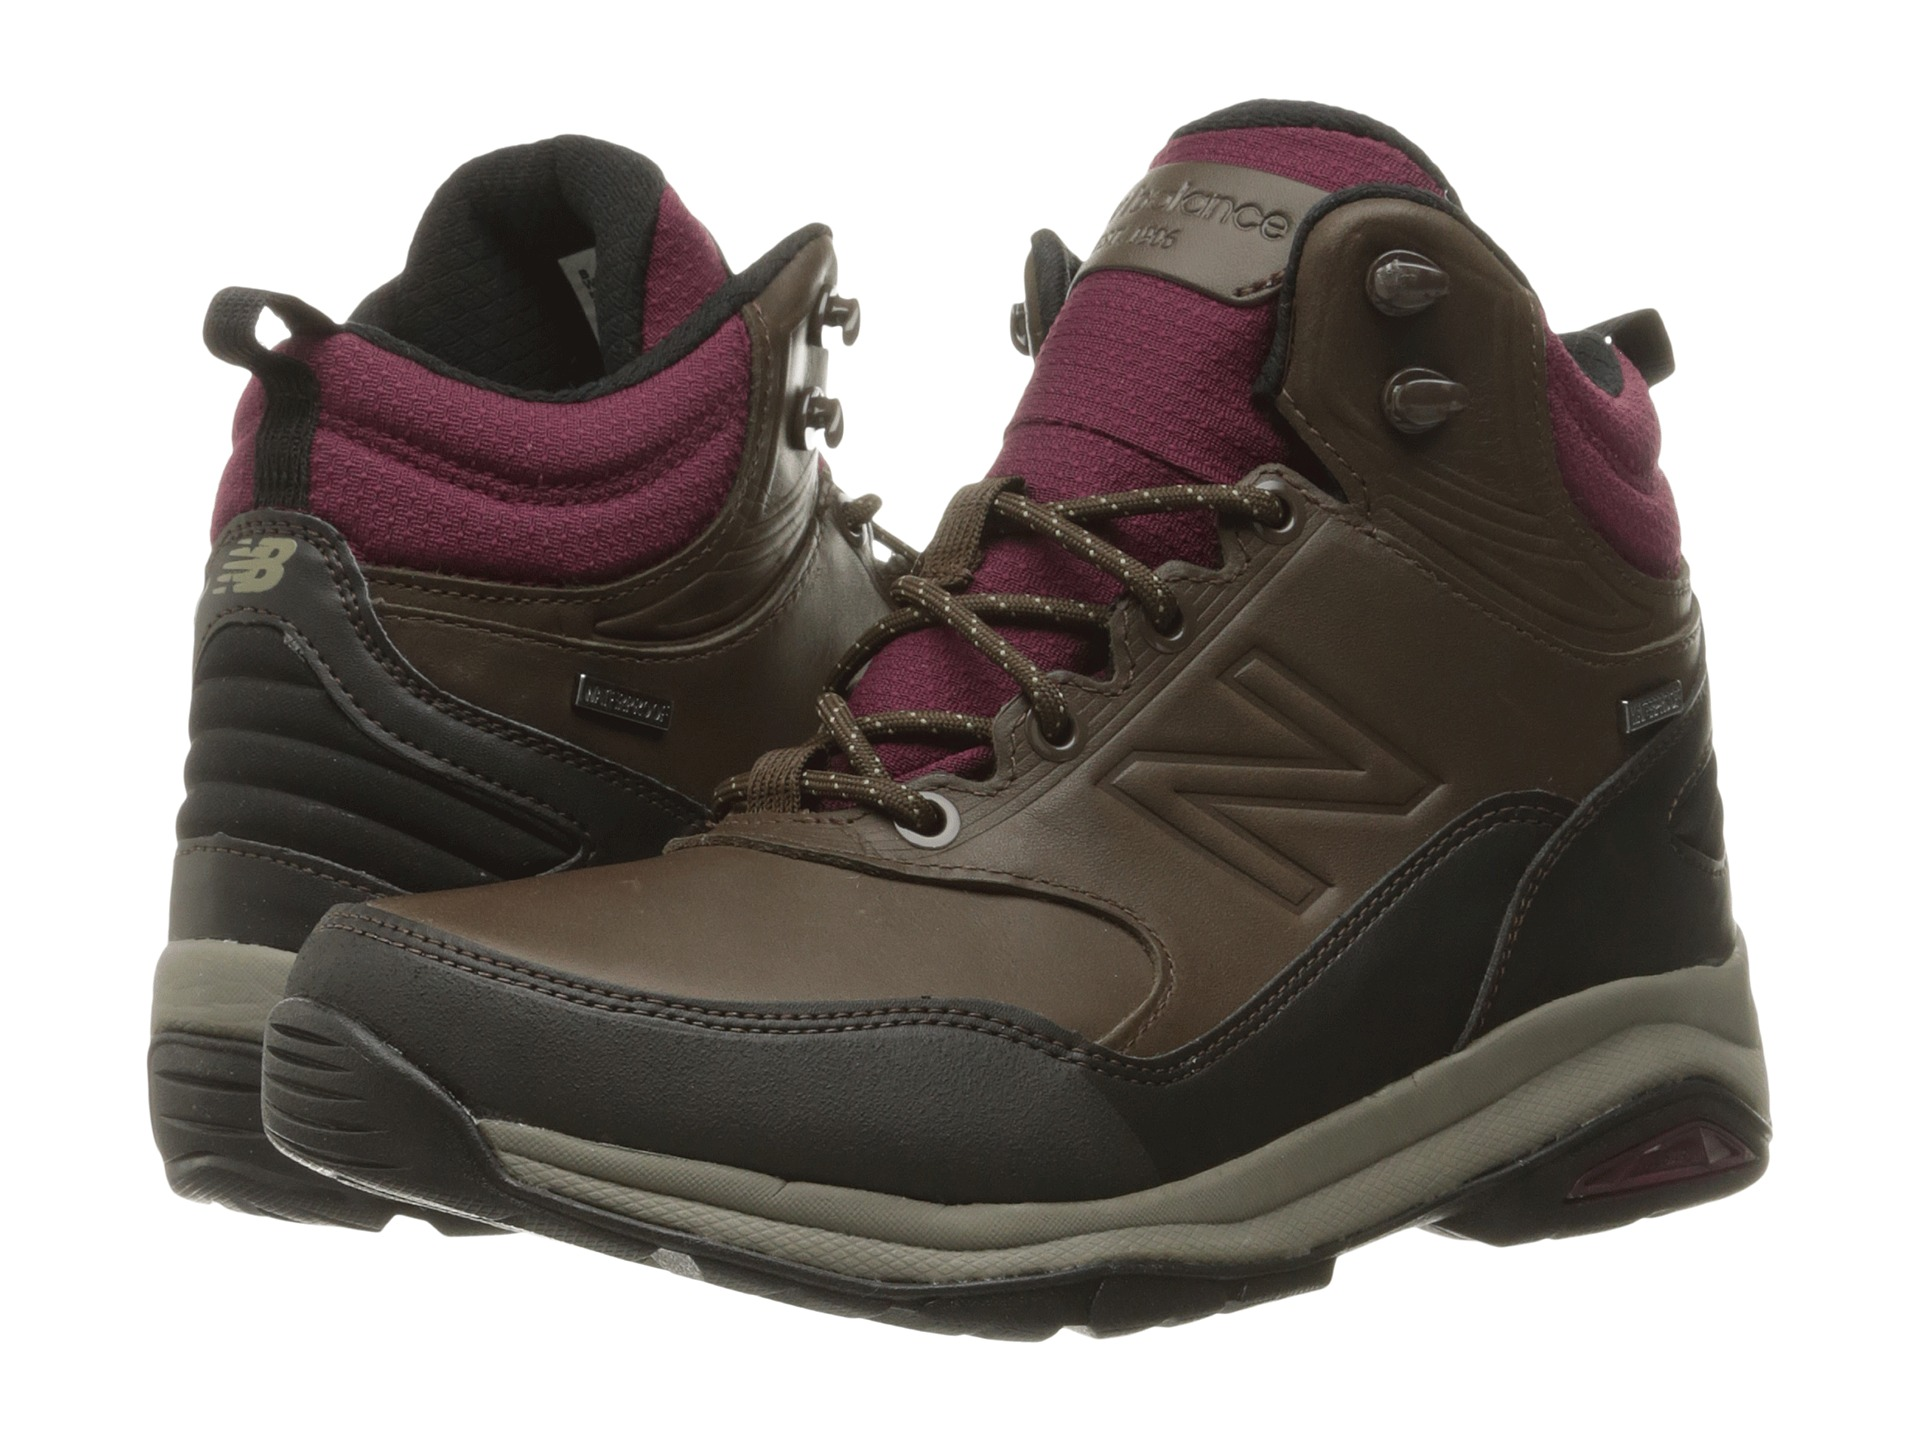 Cheap New Balance Waterproof Hiking Boots Gt Off69 Discounted